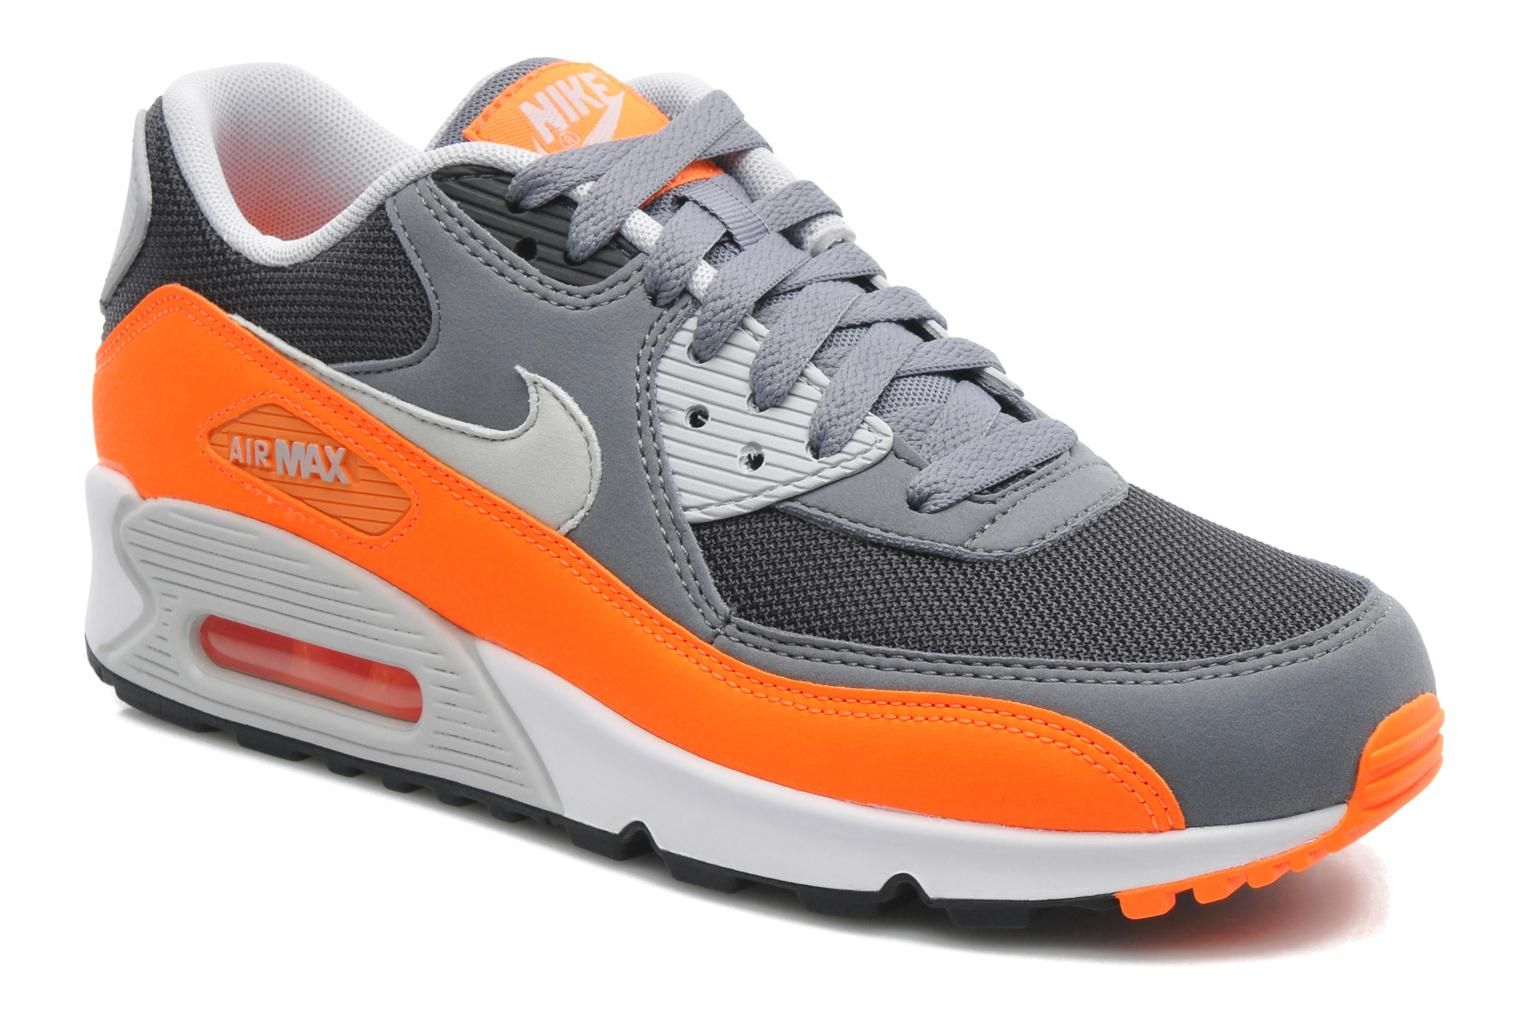 outlet boutique 2018 shoes best wholesaler Nike Nike Air Max 90 Essential   Chaussures- Homme   Nike ...